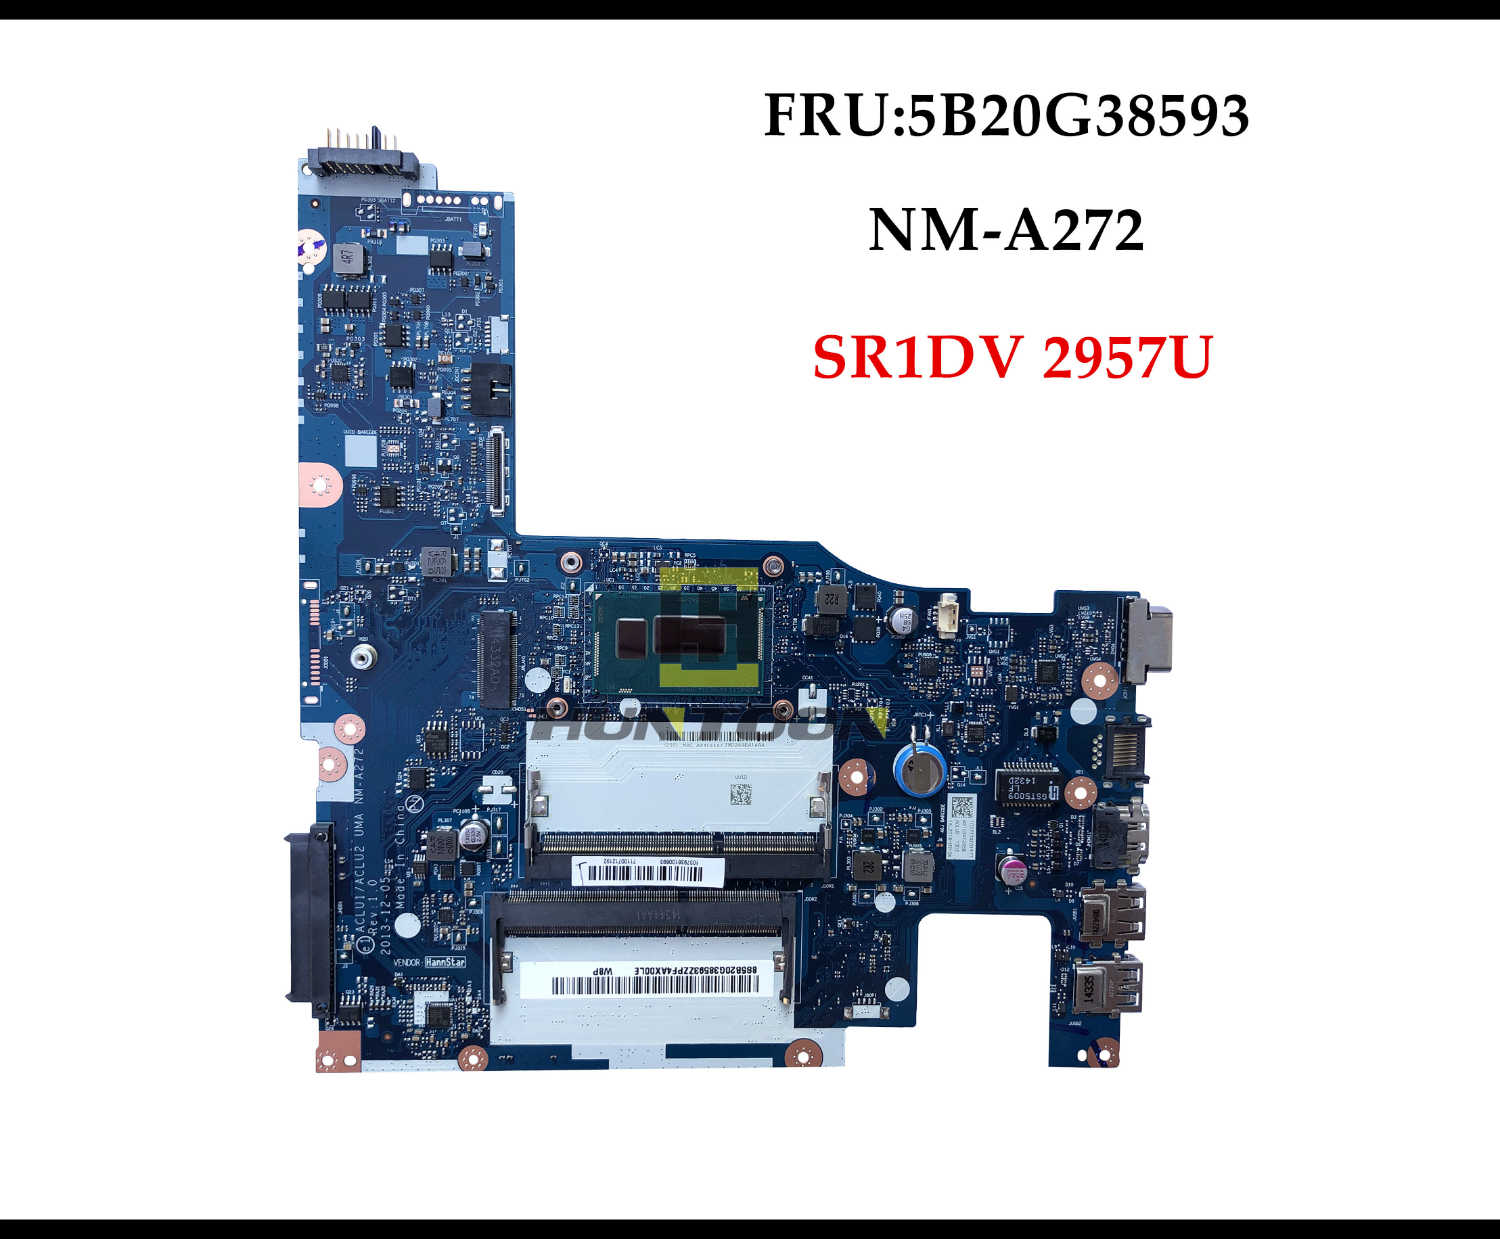 High quality ACLU1/ACLU2 UMA NM-A272 for Lenovo G50-70 Z50-70 Laptop Motherboard 5B20G38593 SR1DV 2957U DDR3L Fully Tested